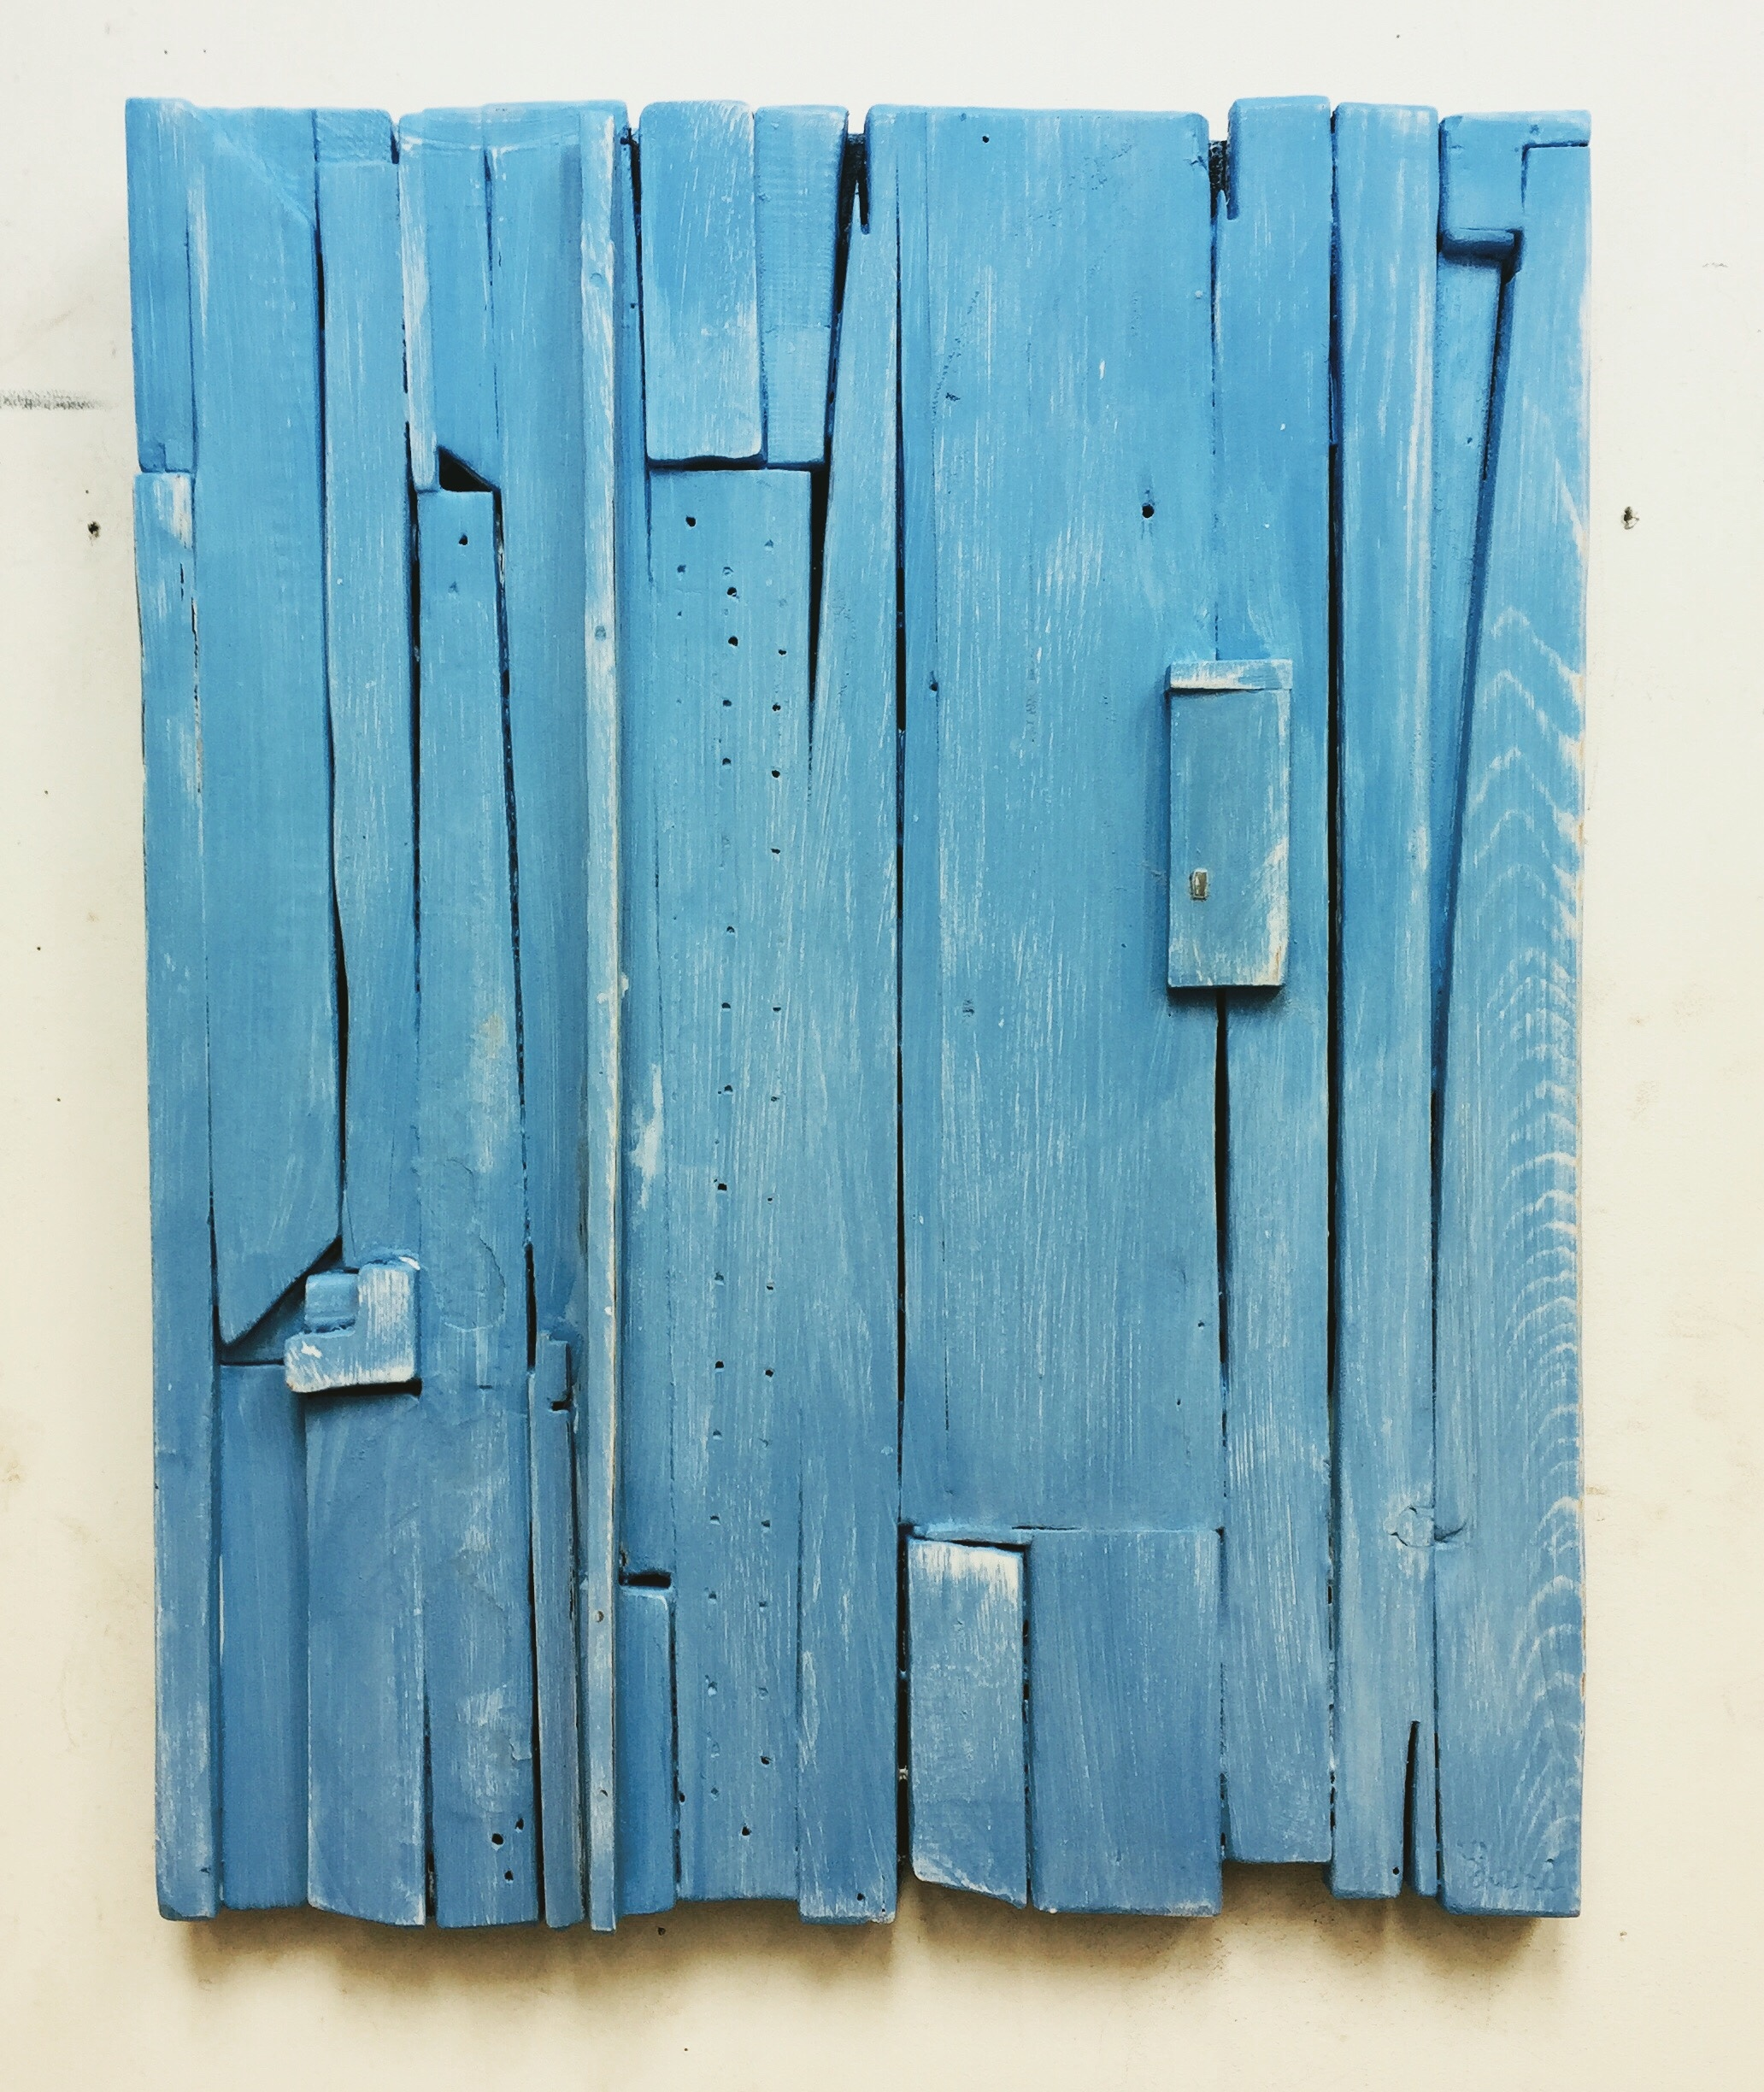 Summer Blue, 2018, acrylic on layered wood, 23 x 18 in, $3,000